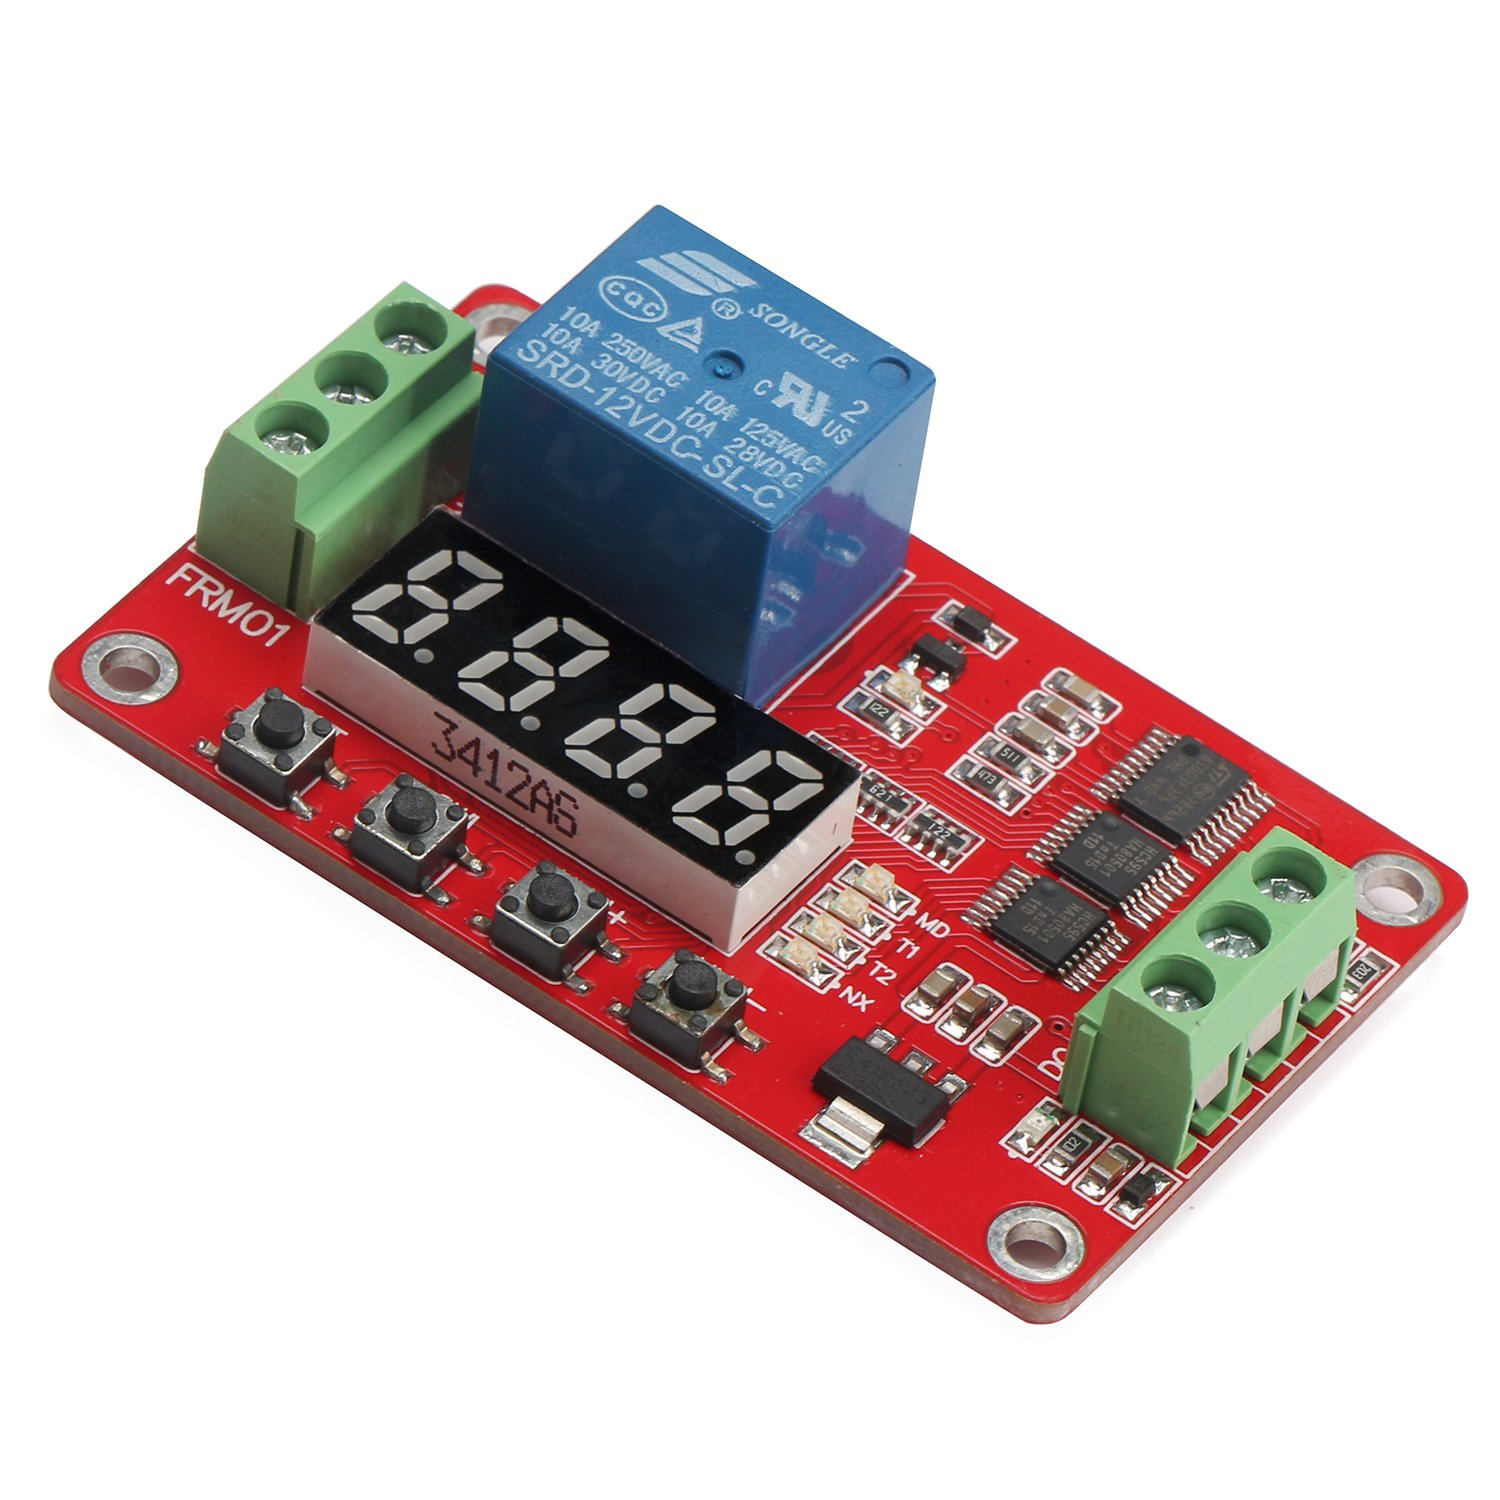 12v Dc Relay Module Drok Multifunctional 12 Volt 1 Are Typically Marked With An C On A Circuit Board Channel Programmable Cycle 10a Portable Timer Switch Power